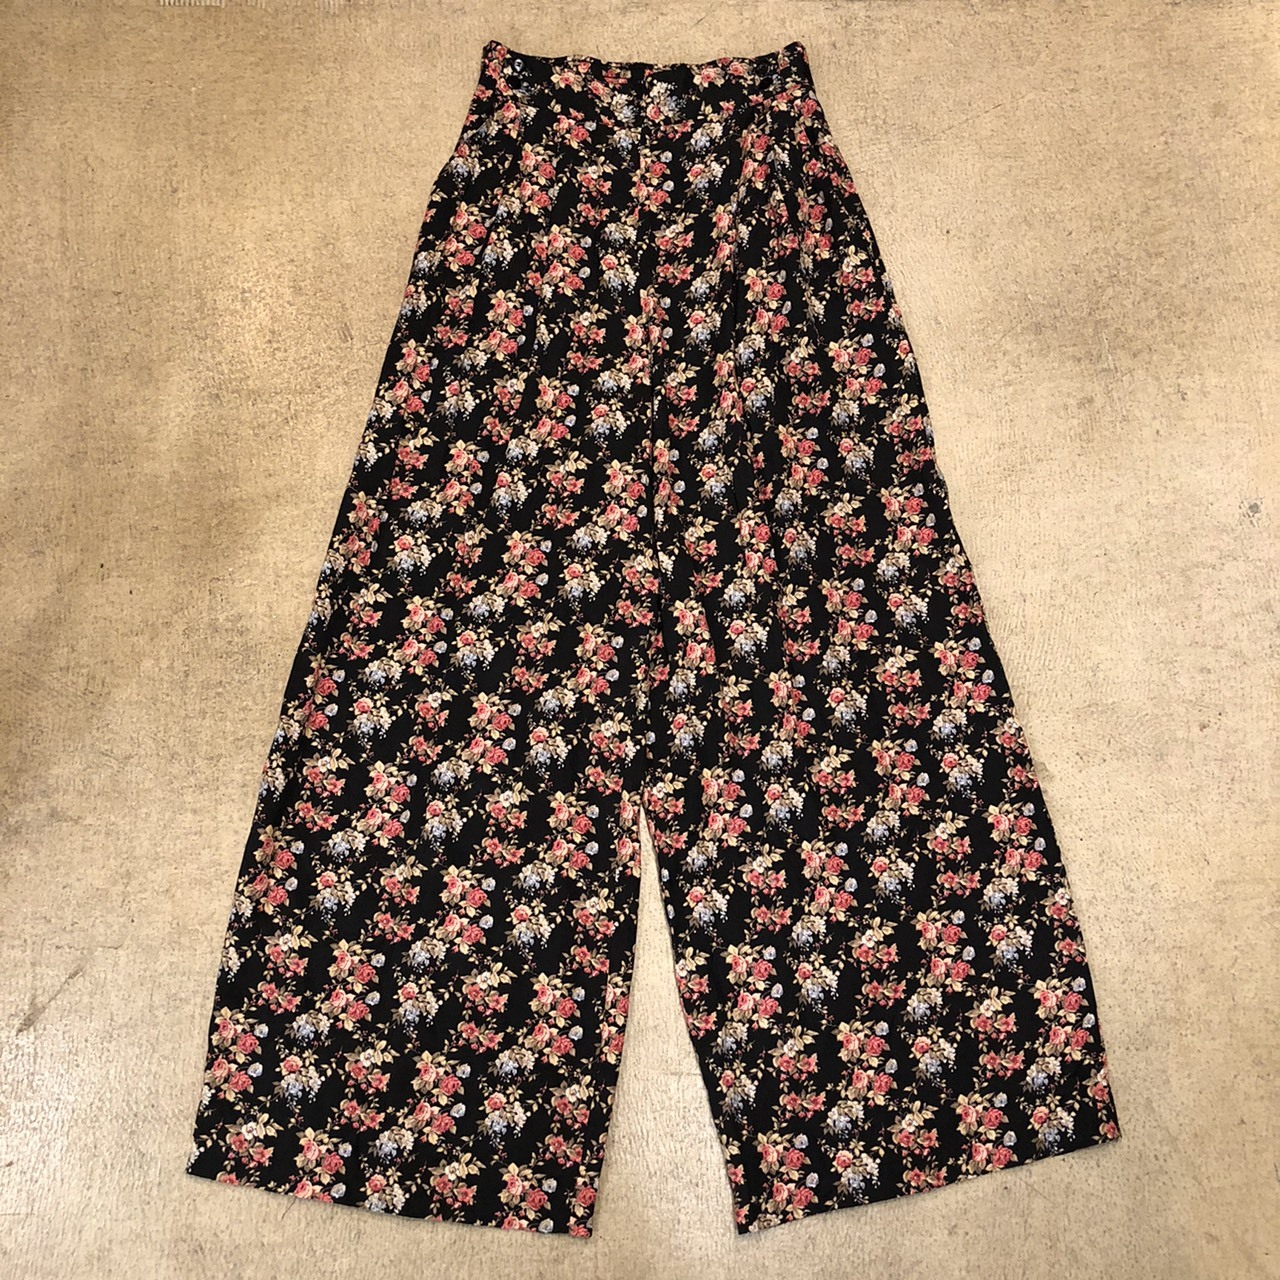 Floral Easy Pants Black ¥5,600+tax